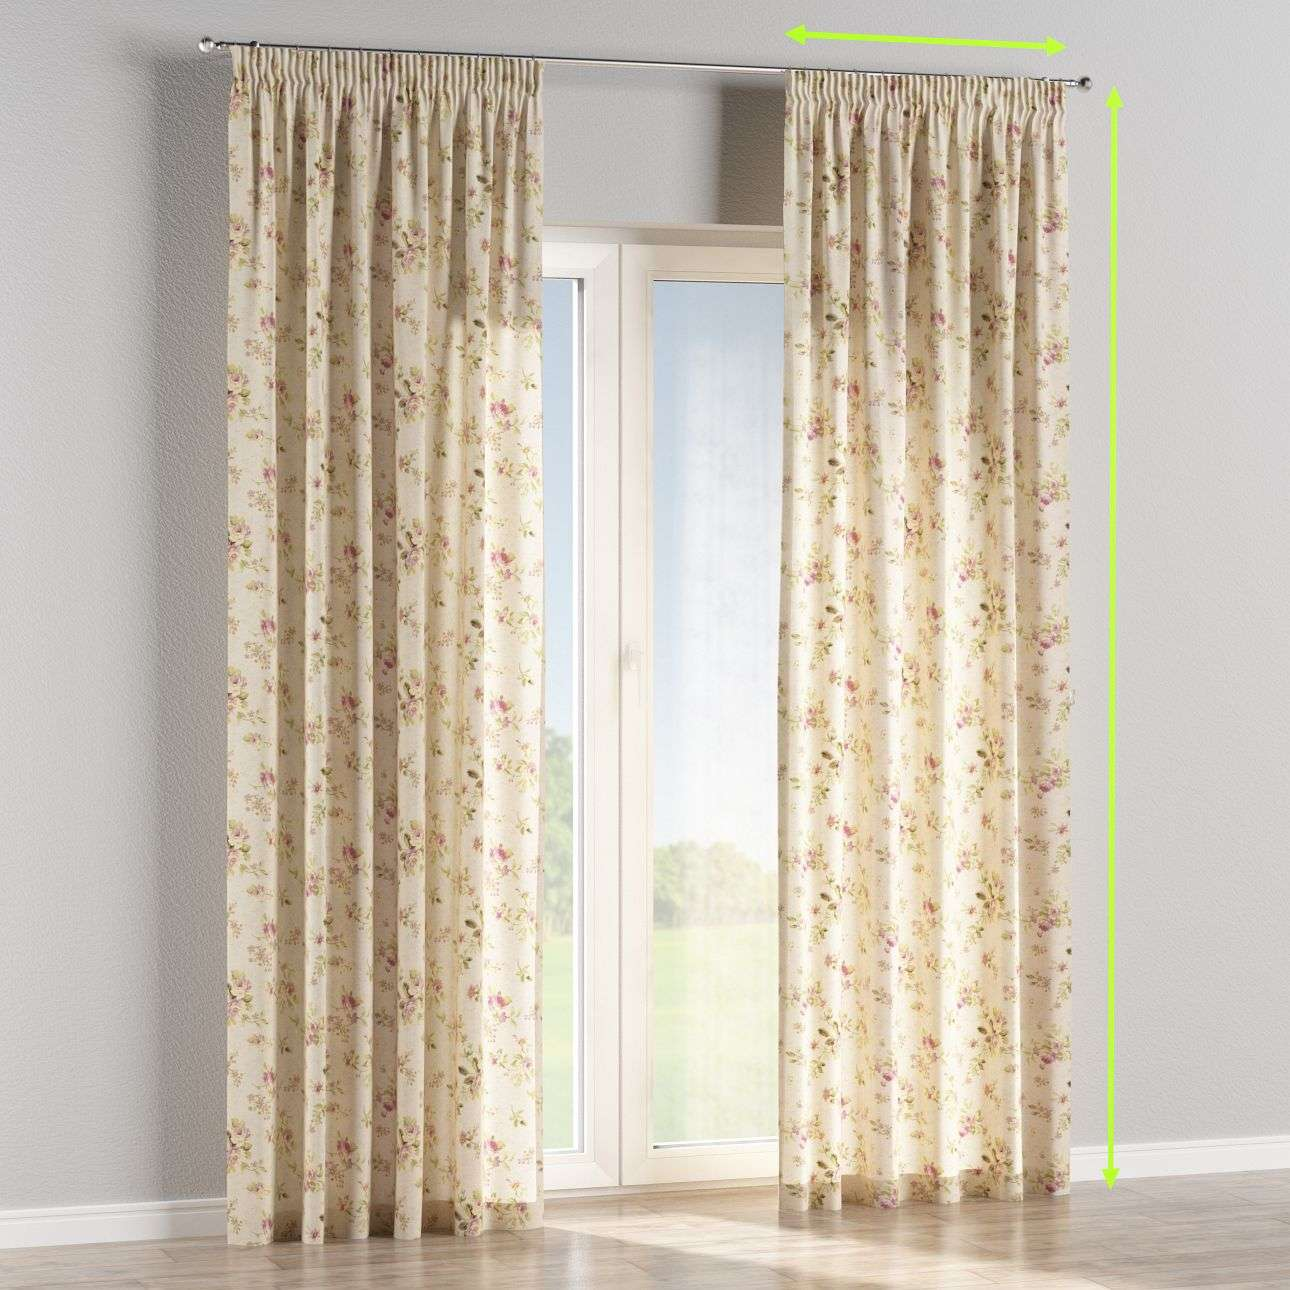 Pencil pleat curtains in collection Londres, fabric: 122-07